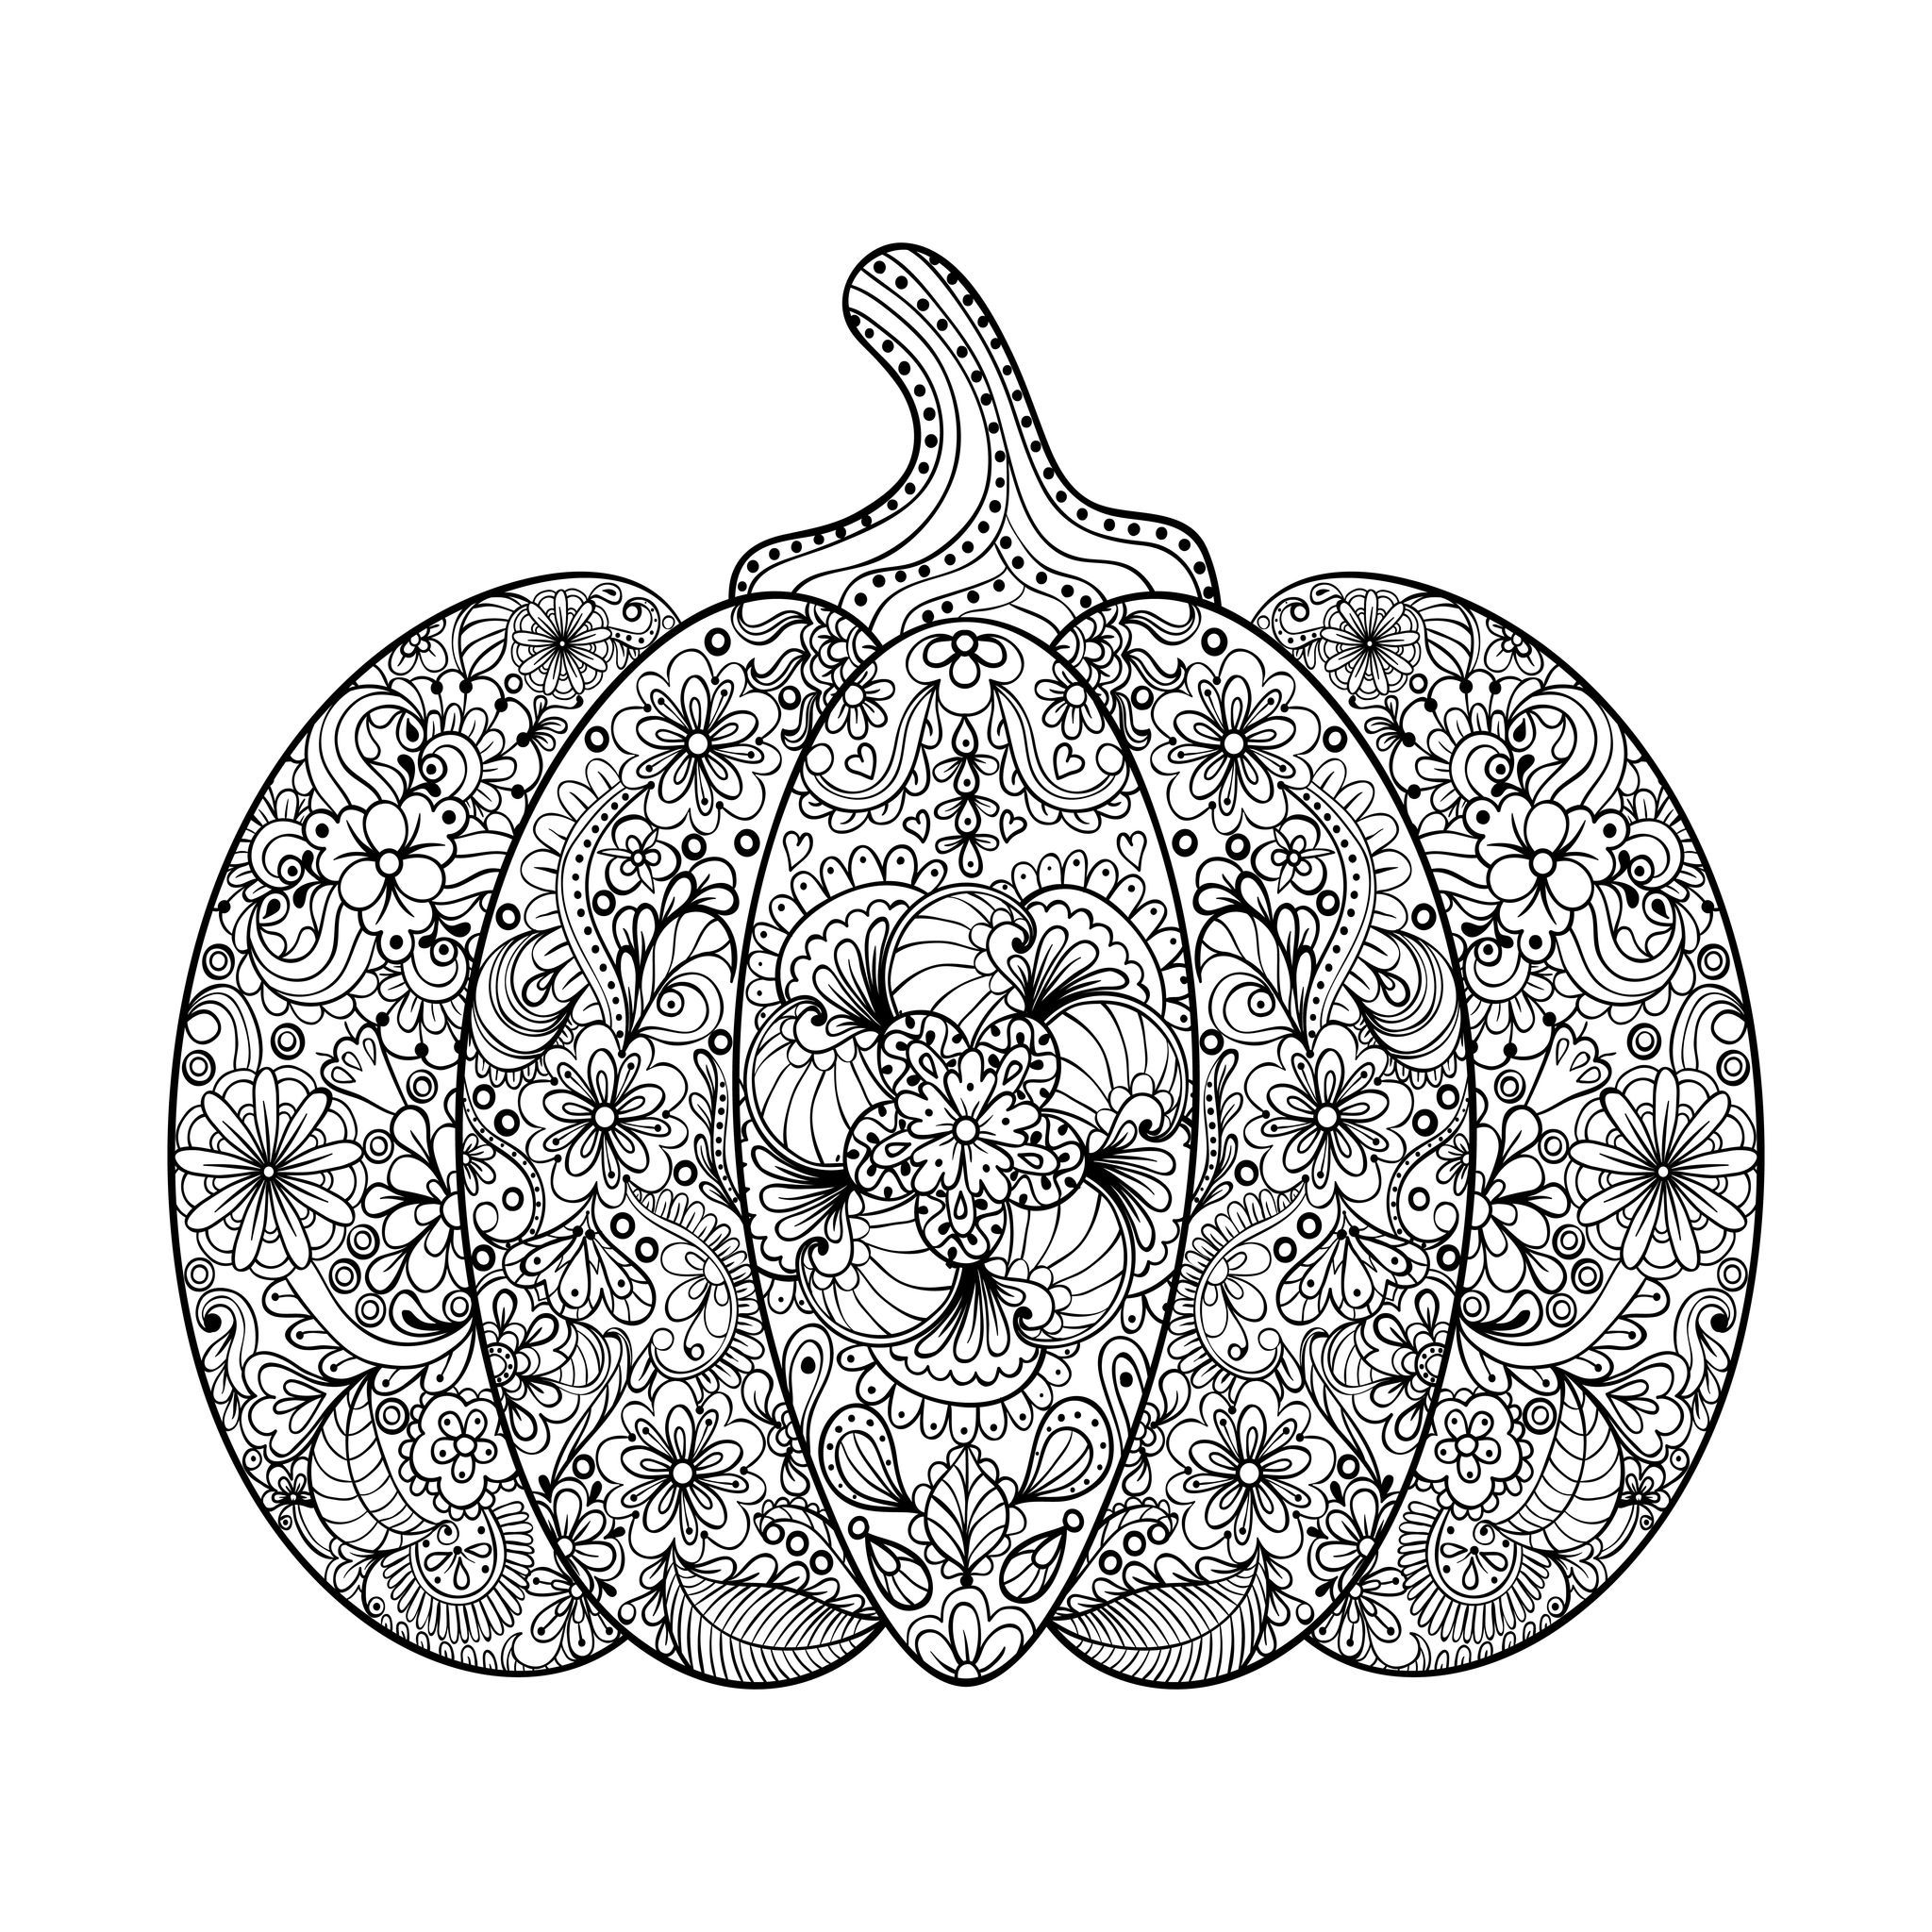 Magnificent Halloween Pumpkin Filled With Flowered Patterns From